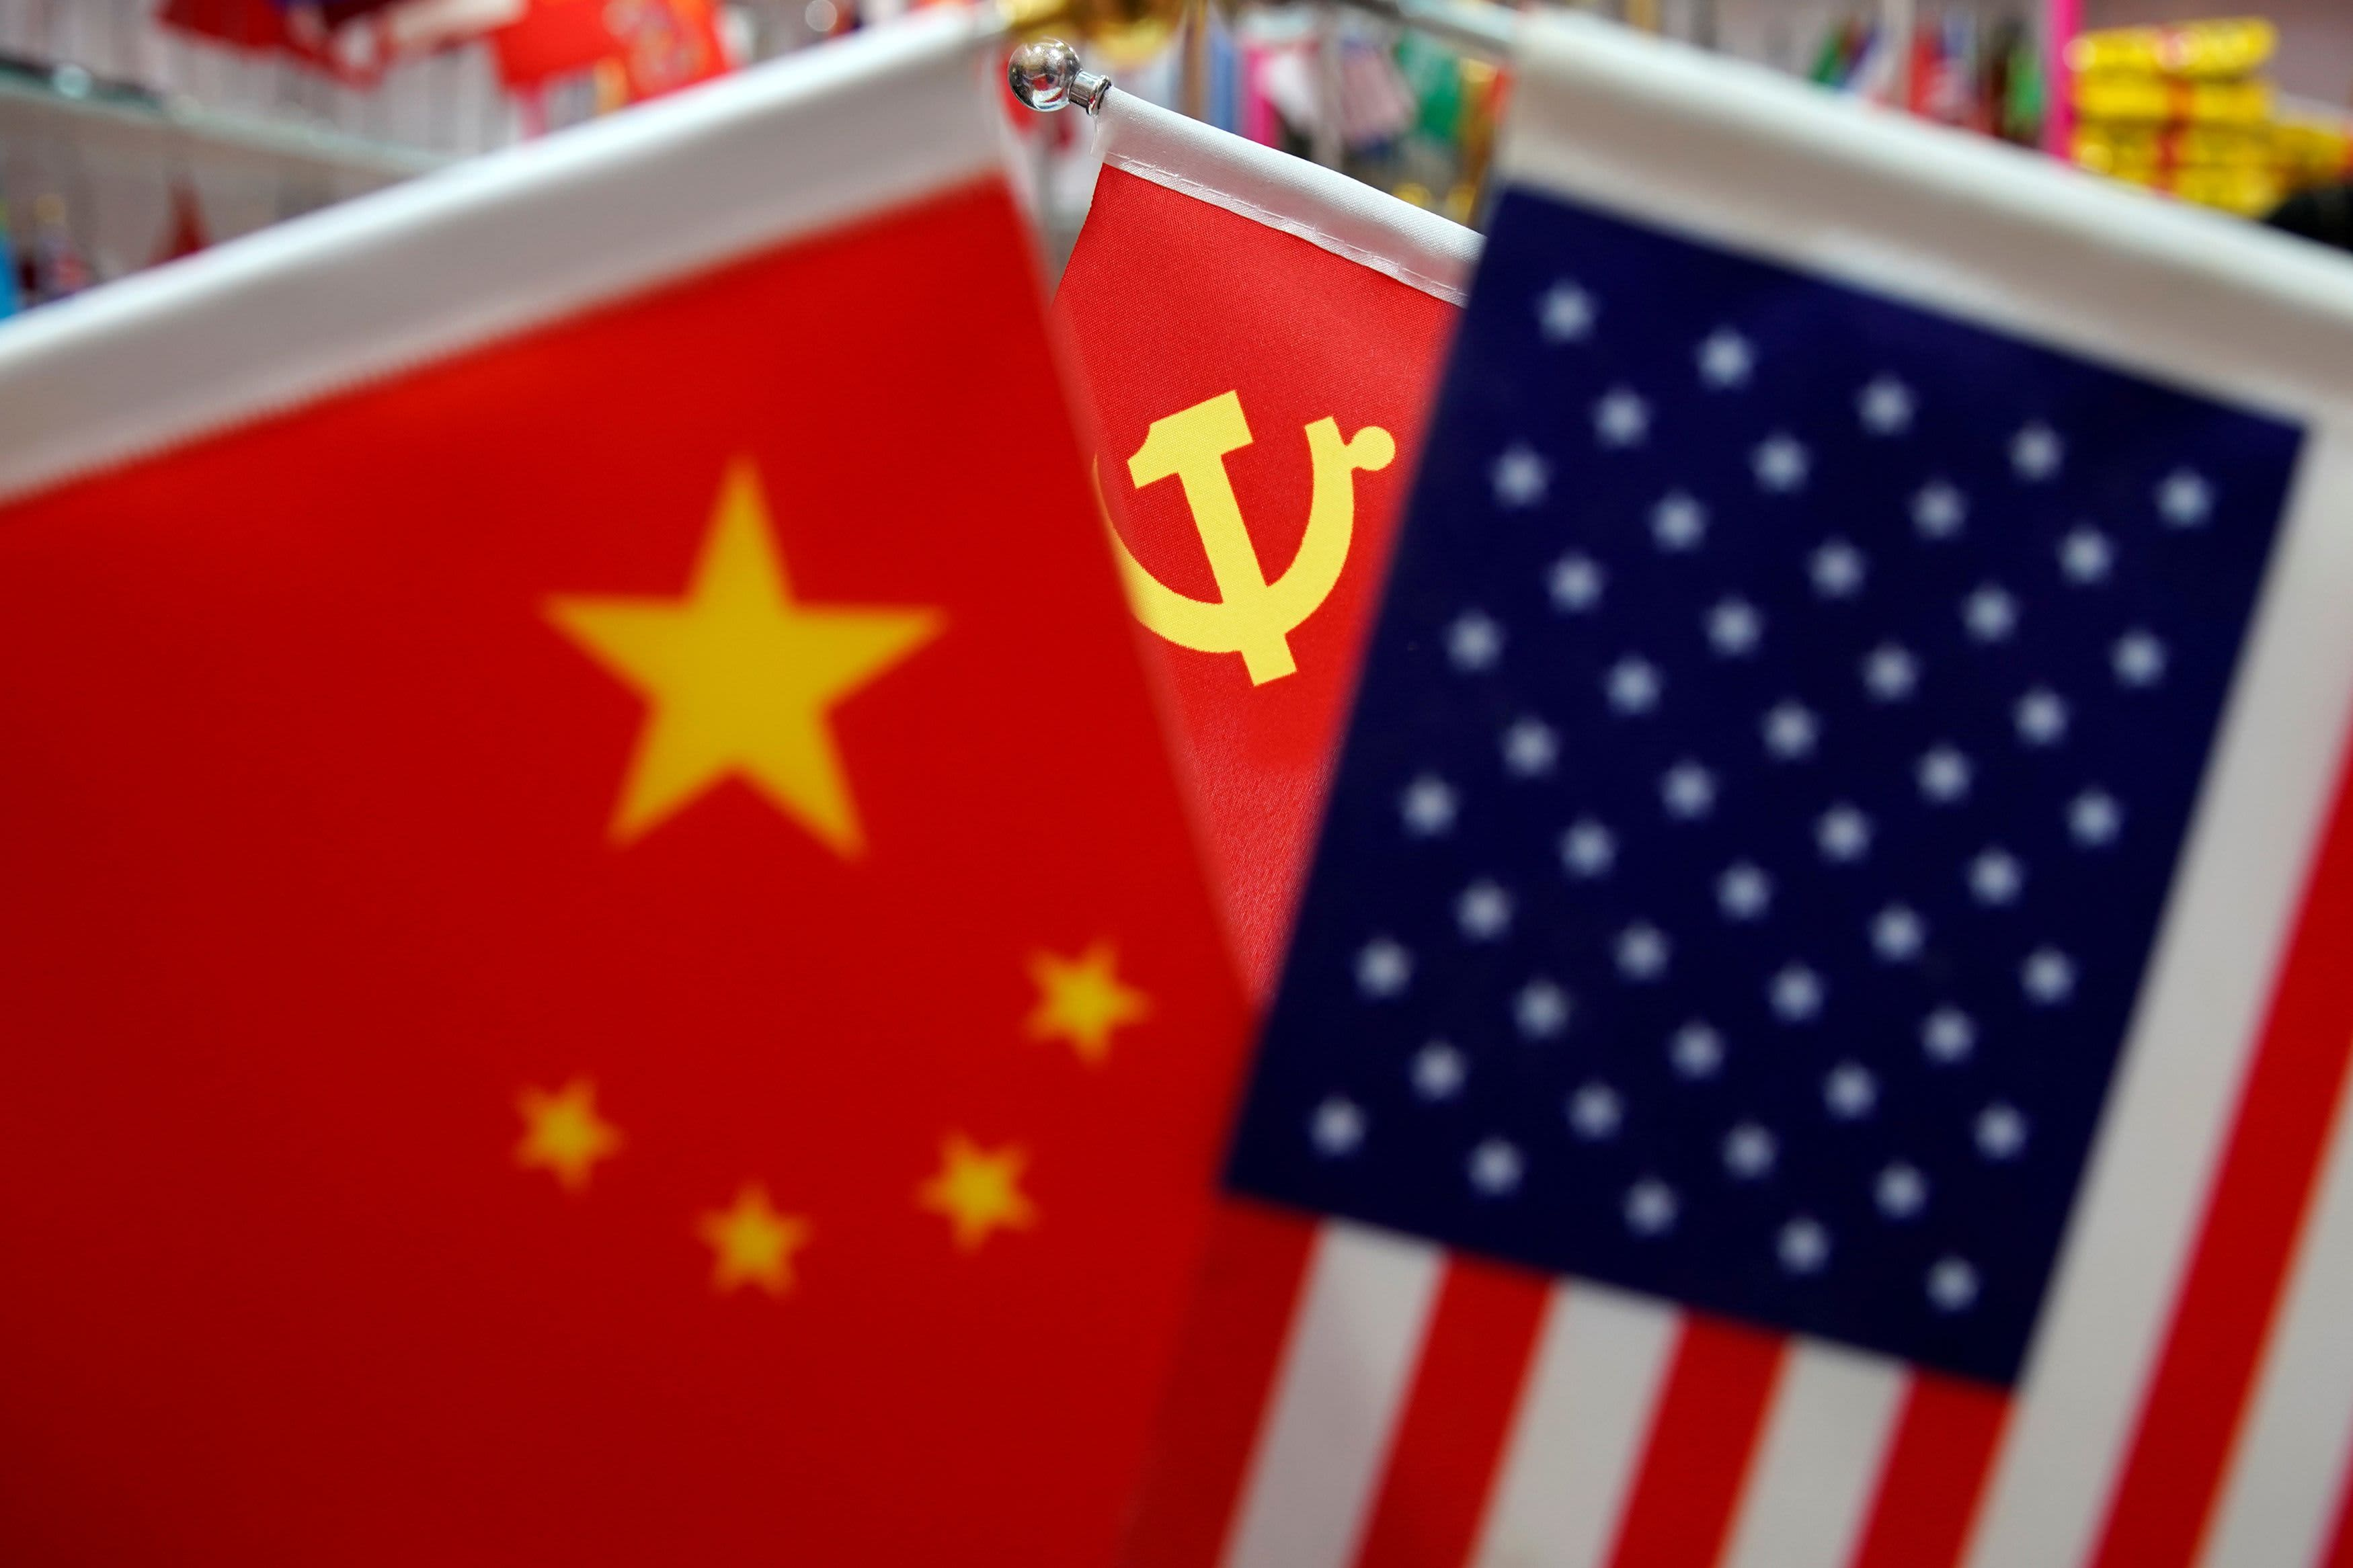 Chinese Foreign Minister Takes Firm Tone, Calls for 'Non-Interference' Between China and the U.S. – NBC 5 Dallas-Fort Worth